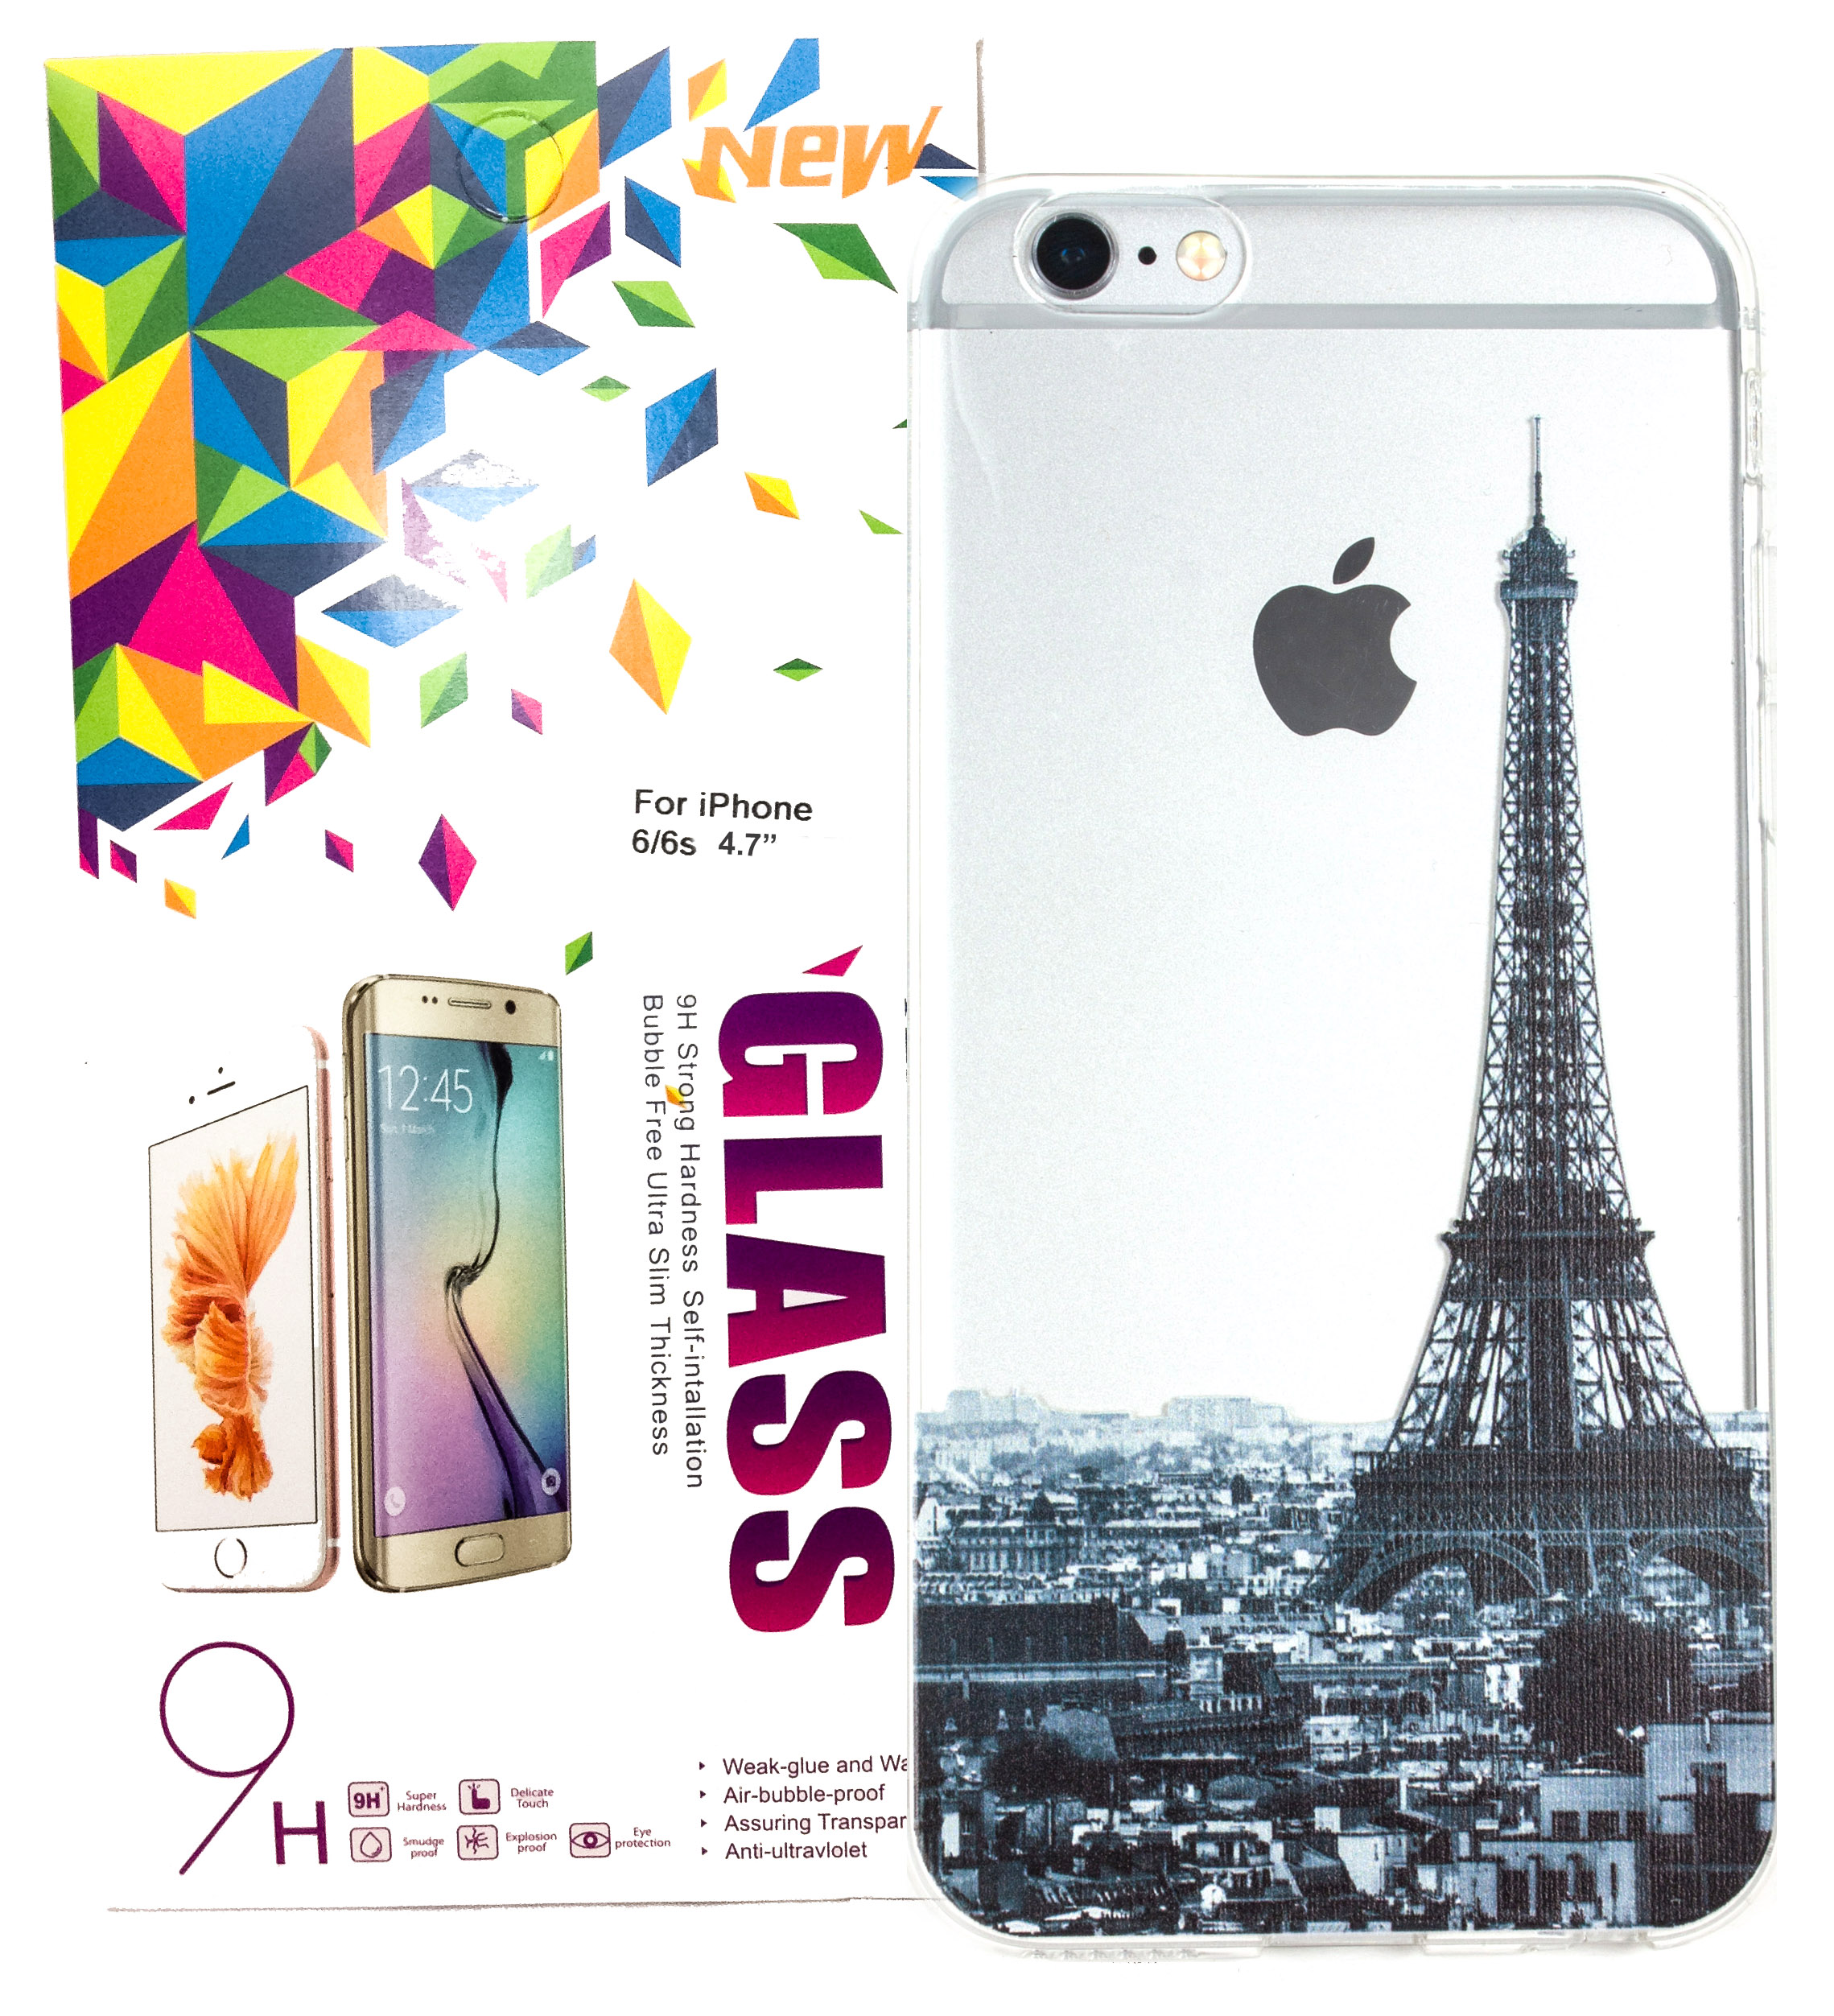 Iphone SE Case w/ Tempered Glass Screen Protector, YogaCase InTrends Cover (Cityscape Paris)